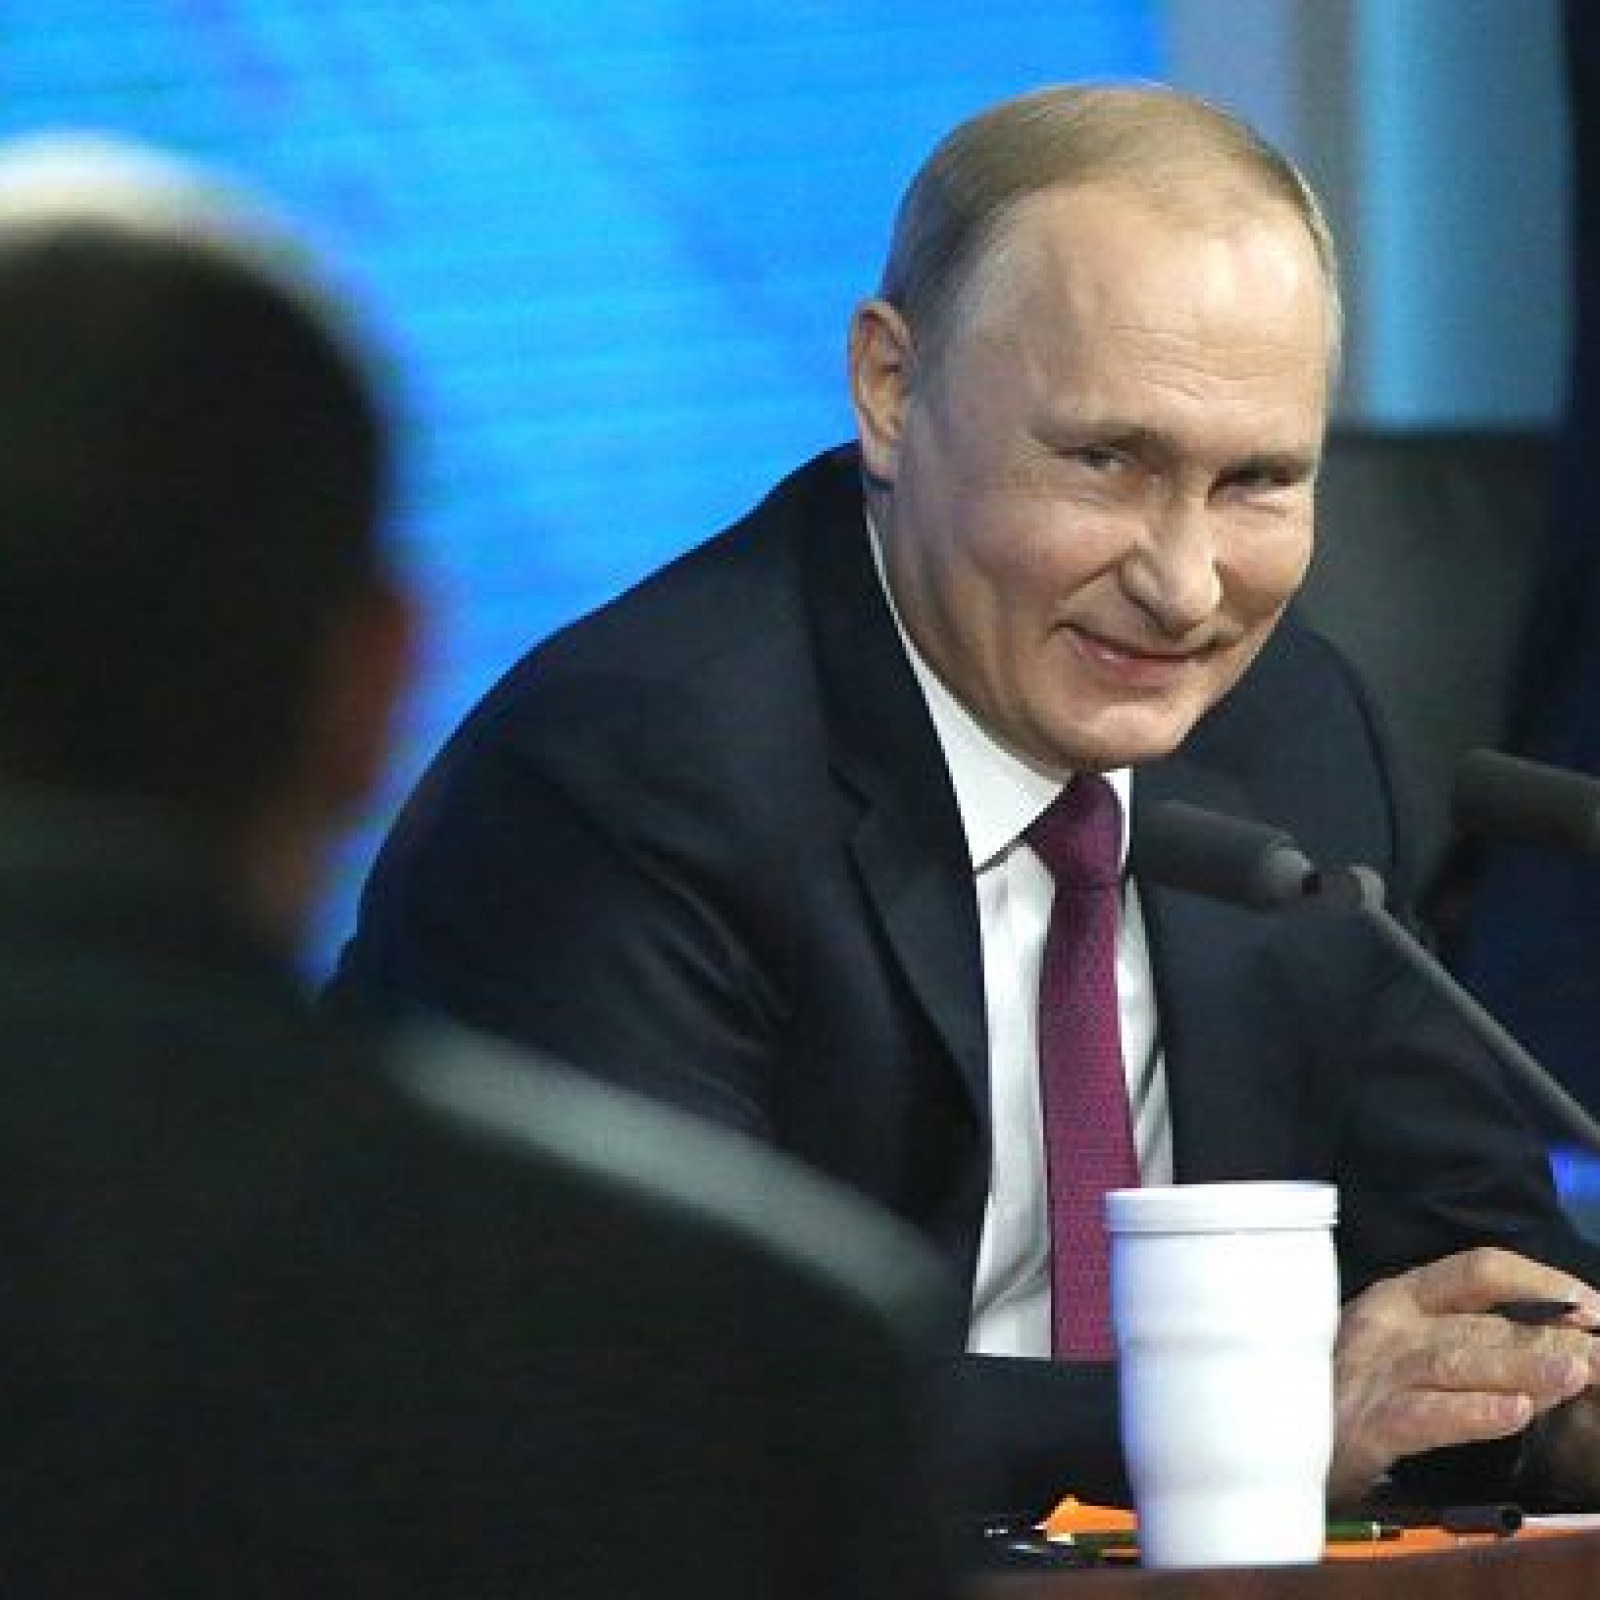 Vladimir Putin Says He S A Decent Person And Decent People Get Married I Will Have To Do It Someday